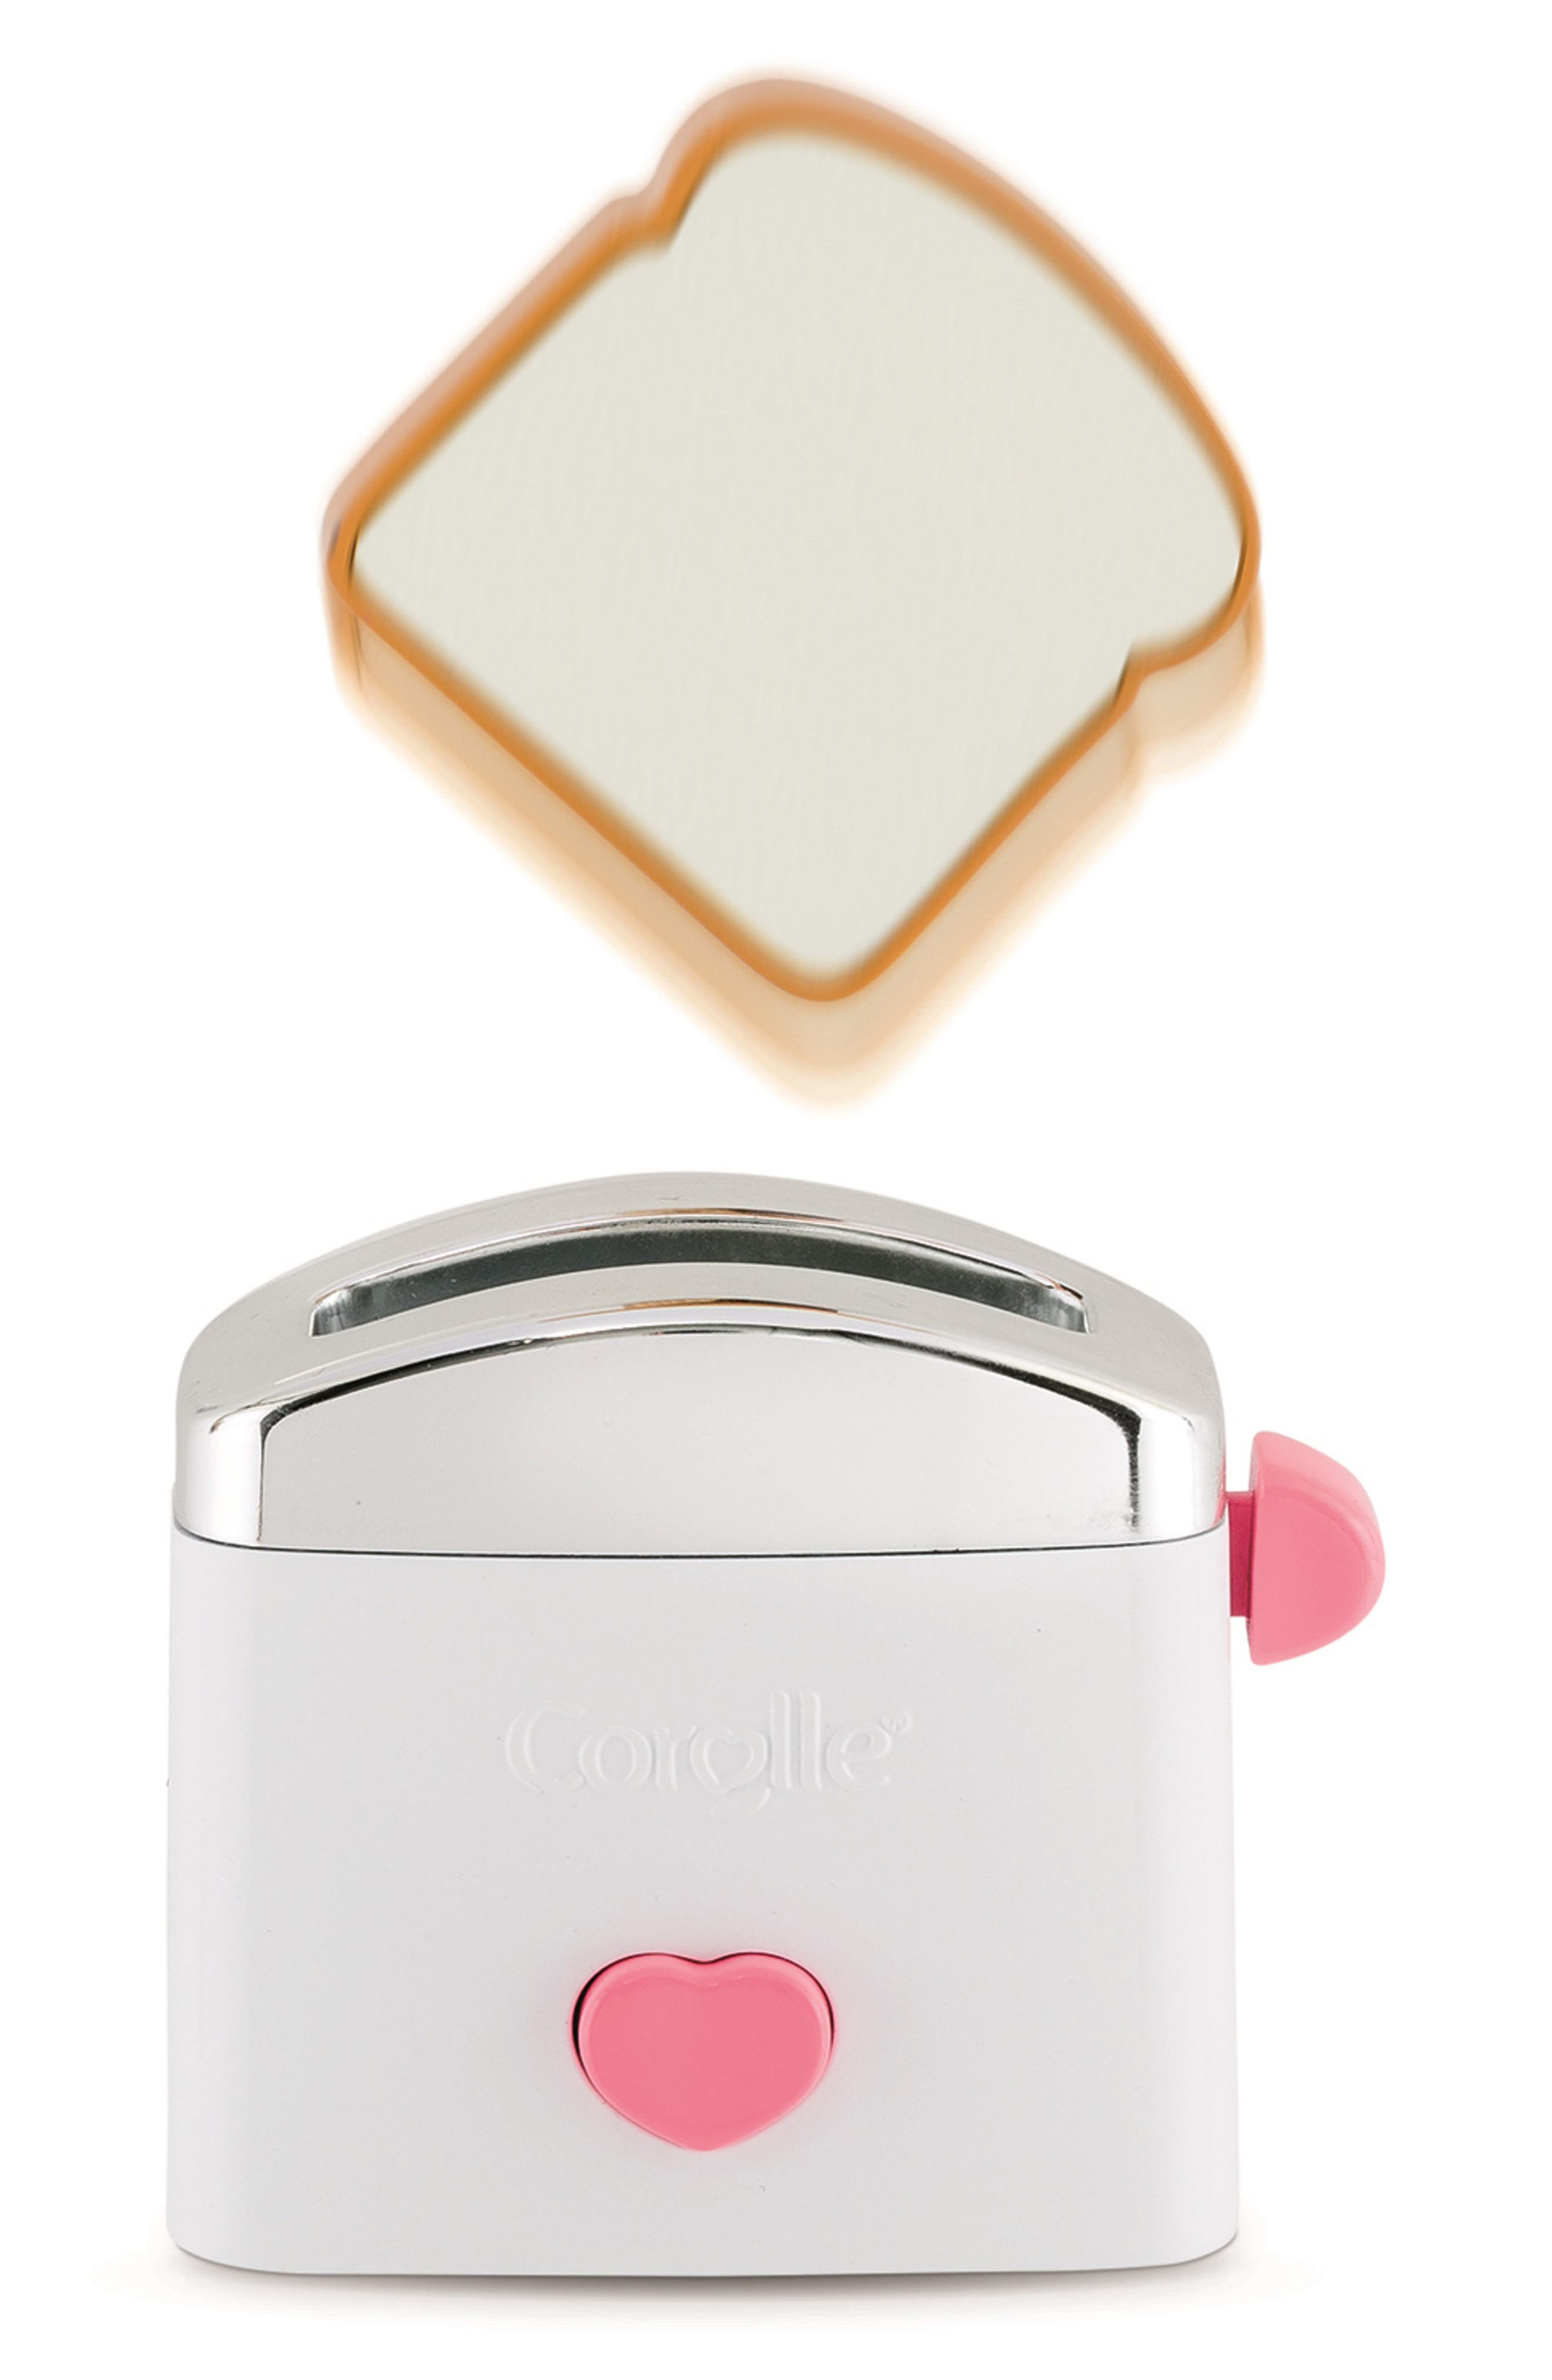 Toy Toaster & Toast Play Set,                             Alternate thumbnail 3, color,                             100